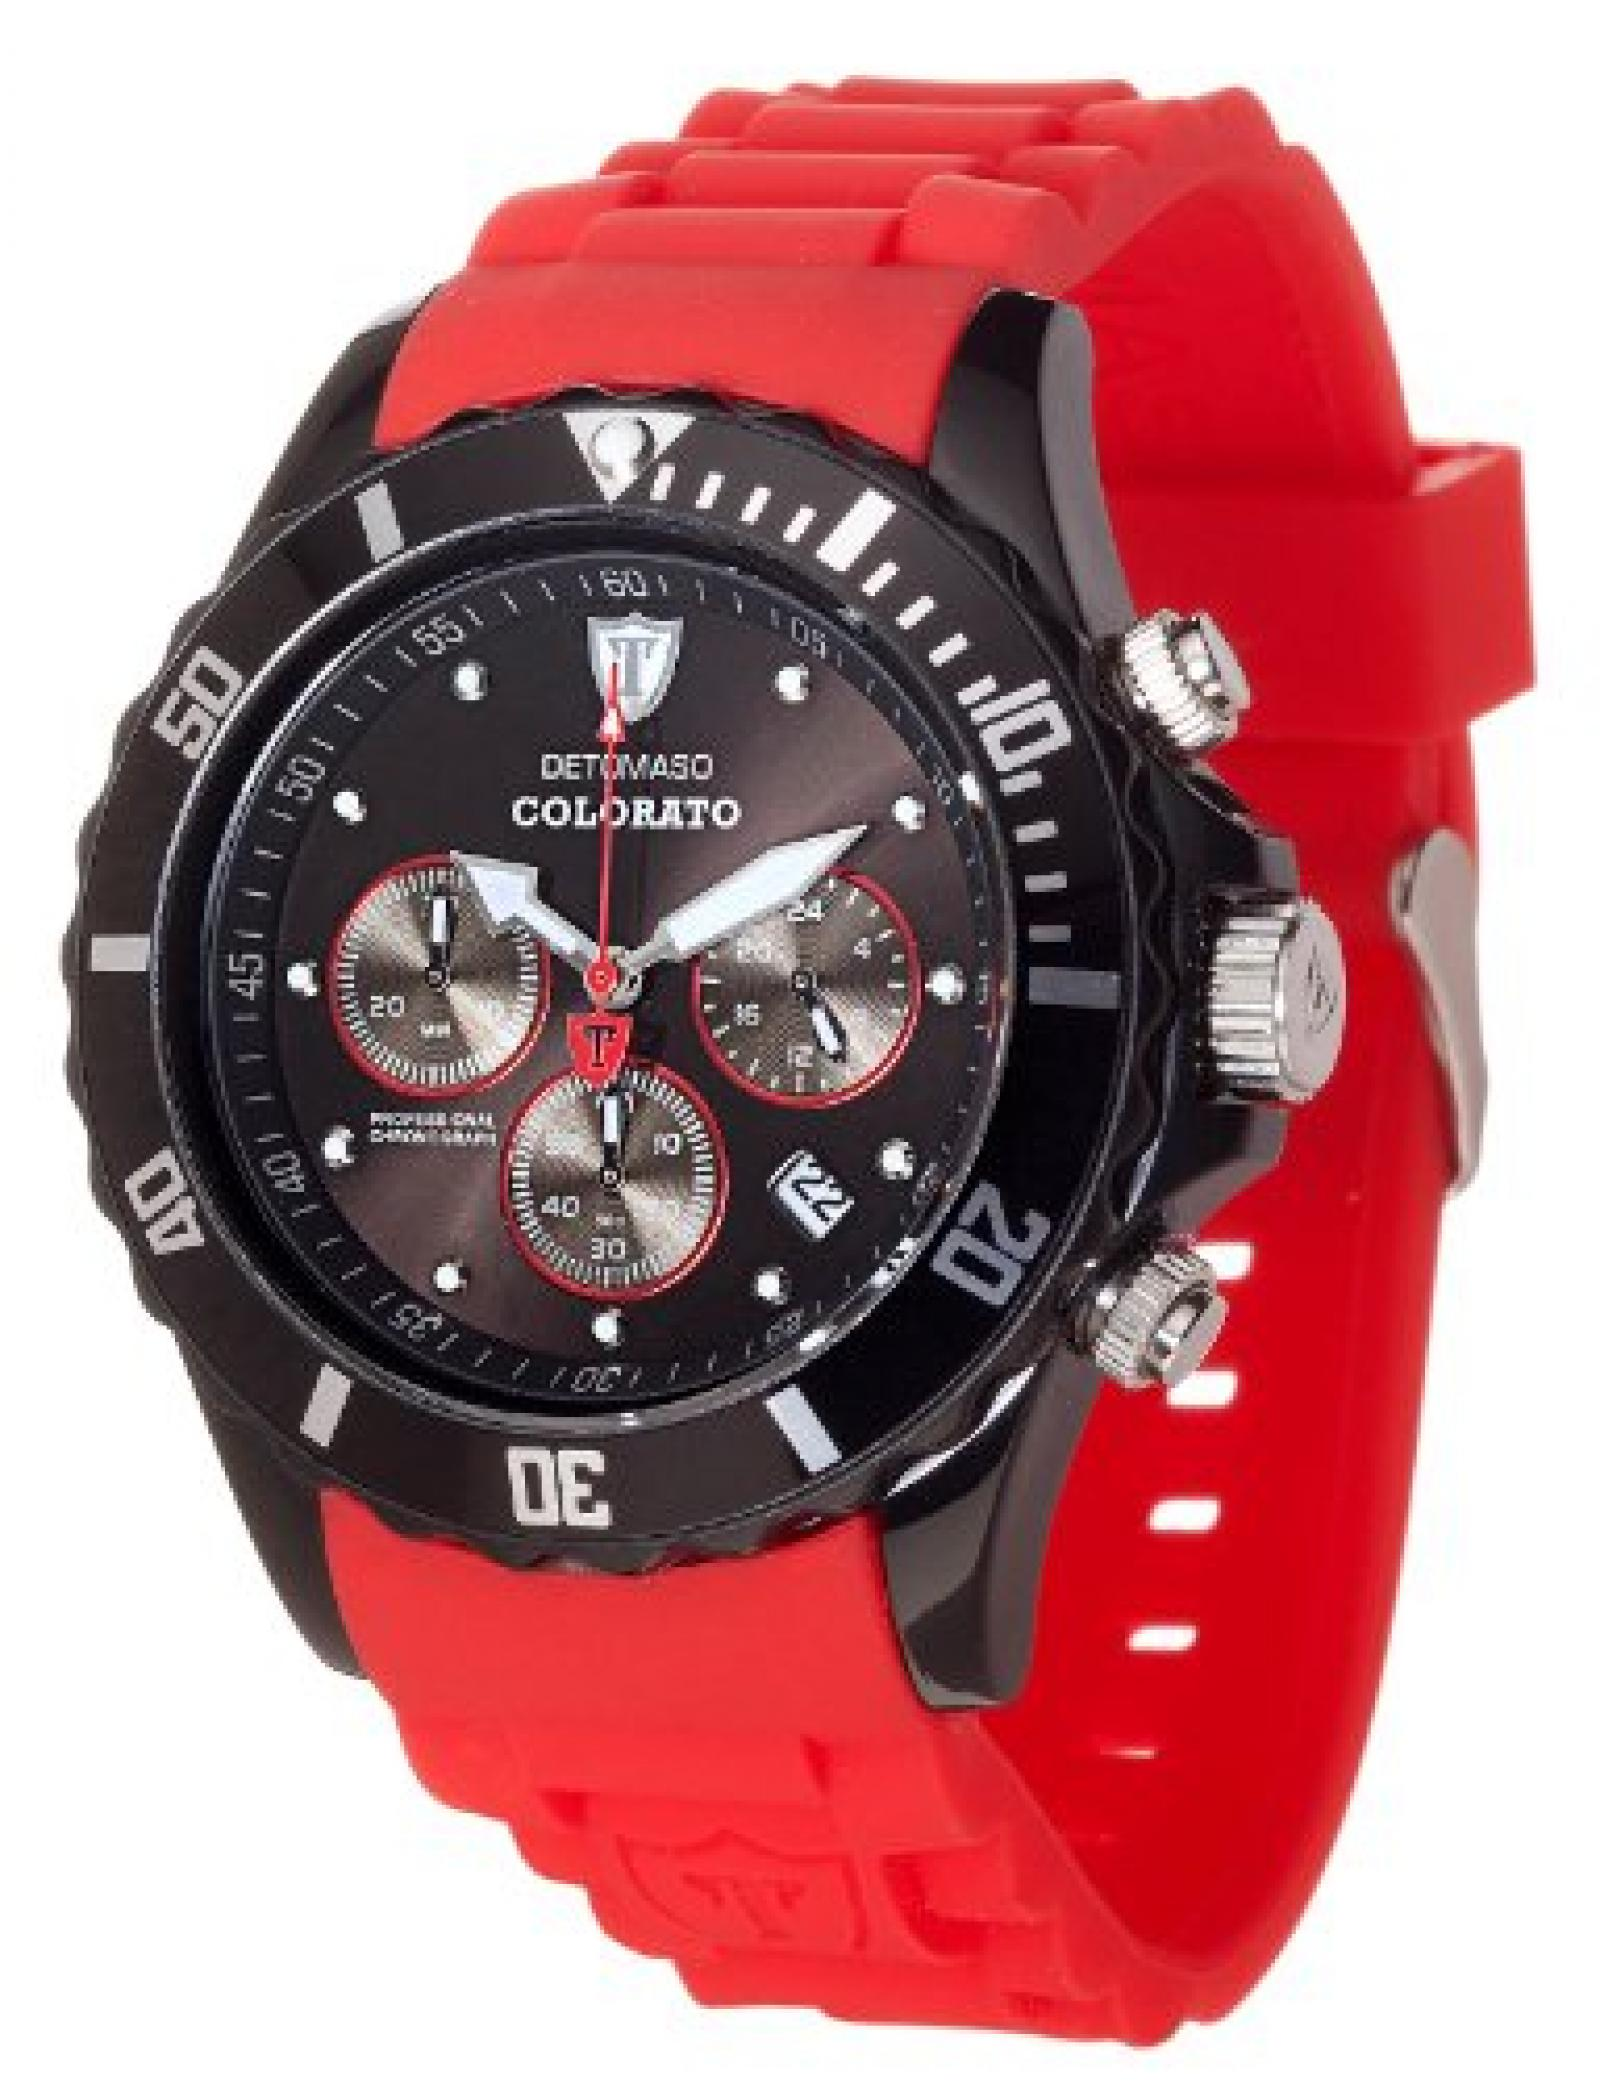 Detomaso Unisex-Armbanduhr COLORATO CHRONO Black/Red Chronograph Quarz Silikon DT2019-B